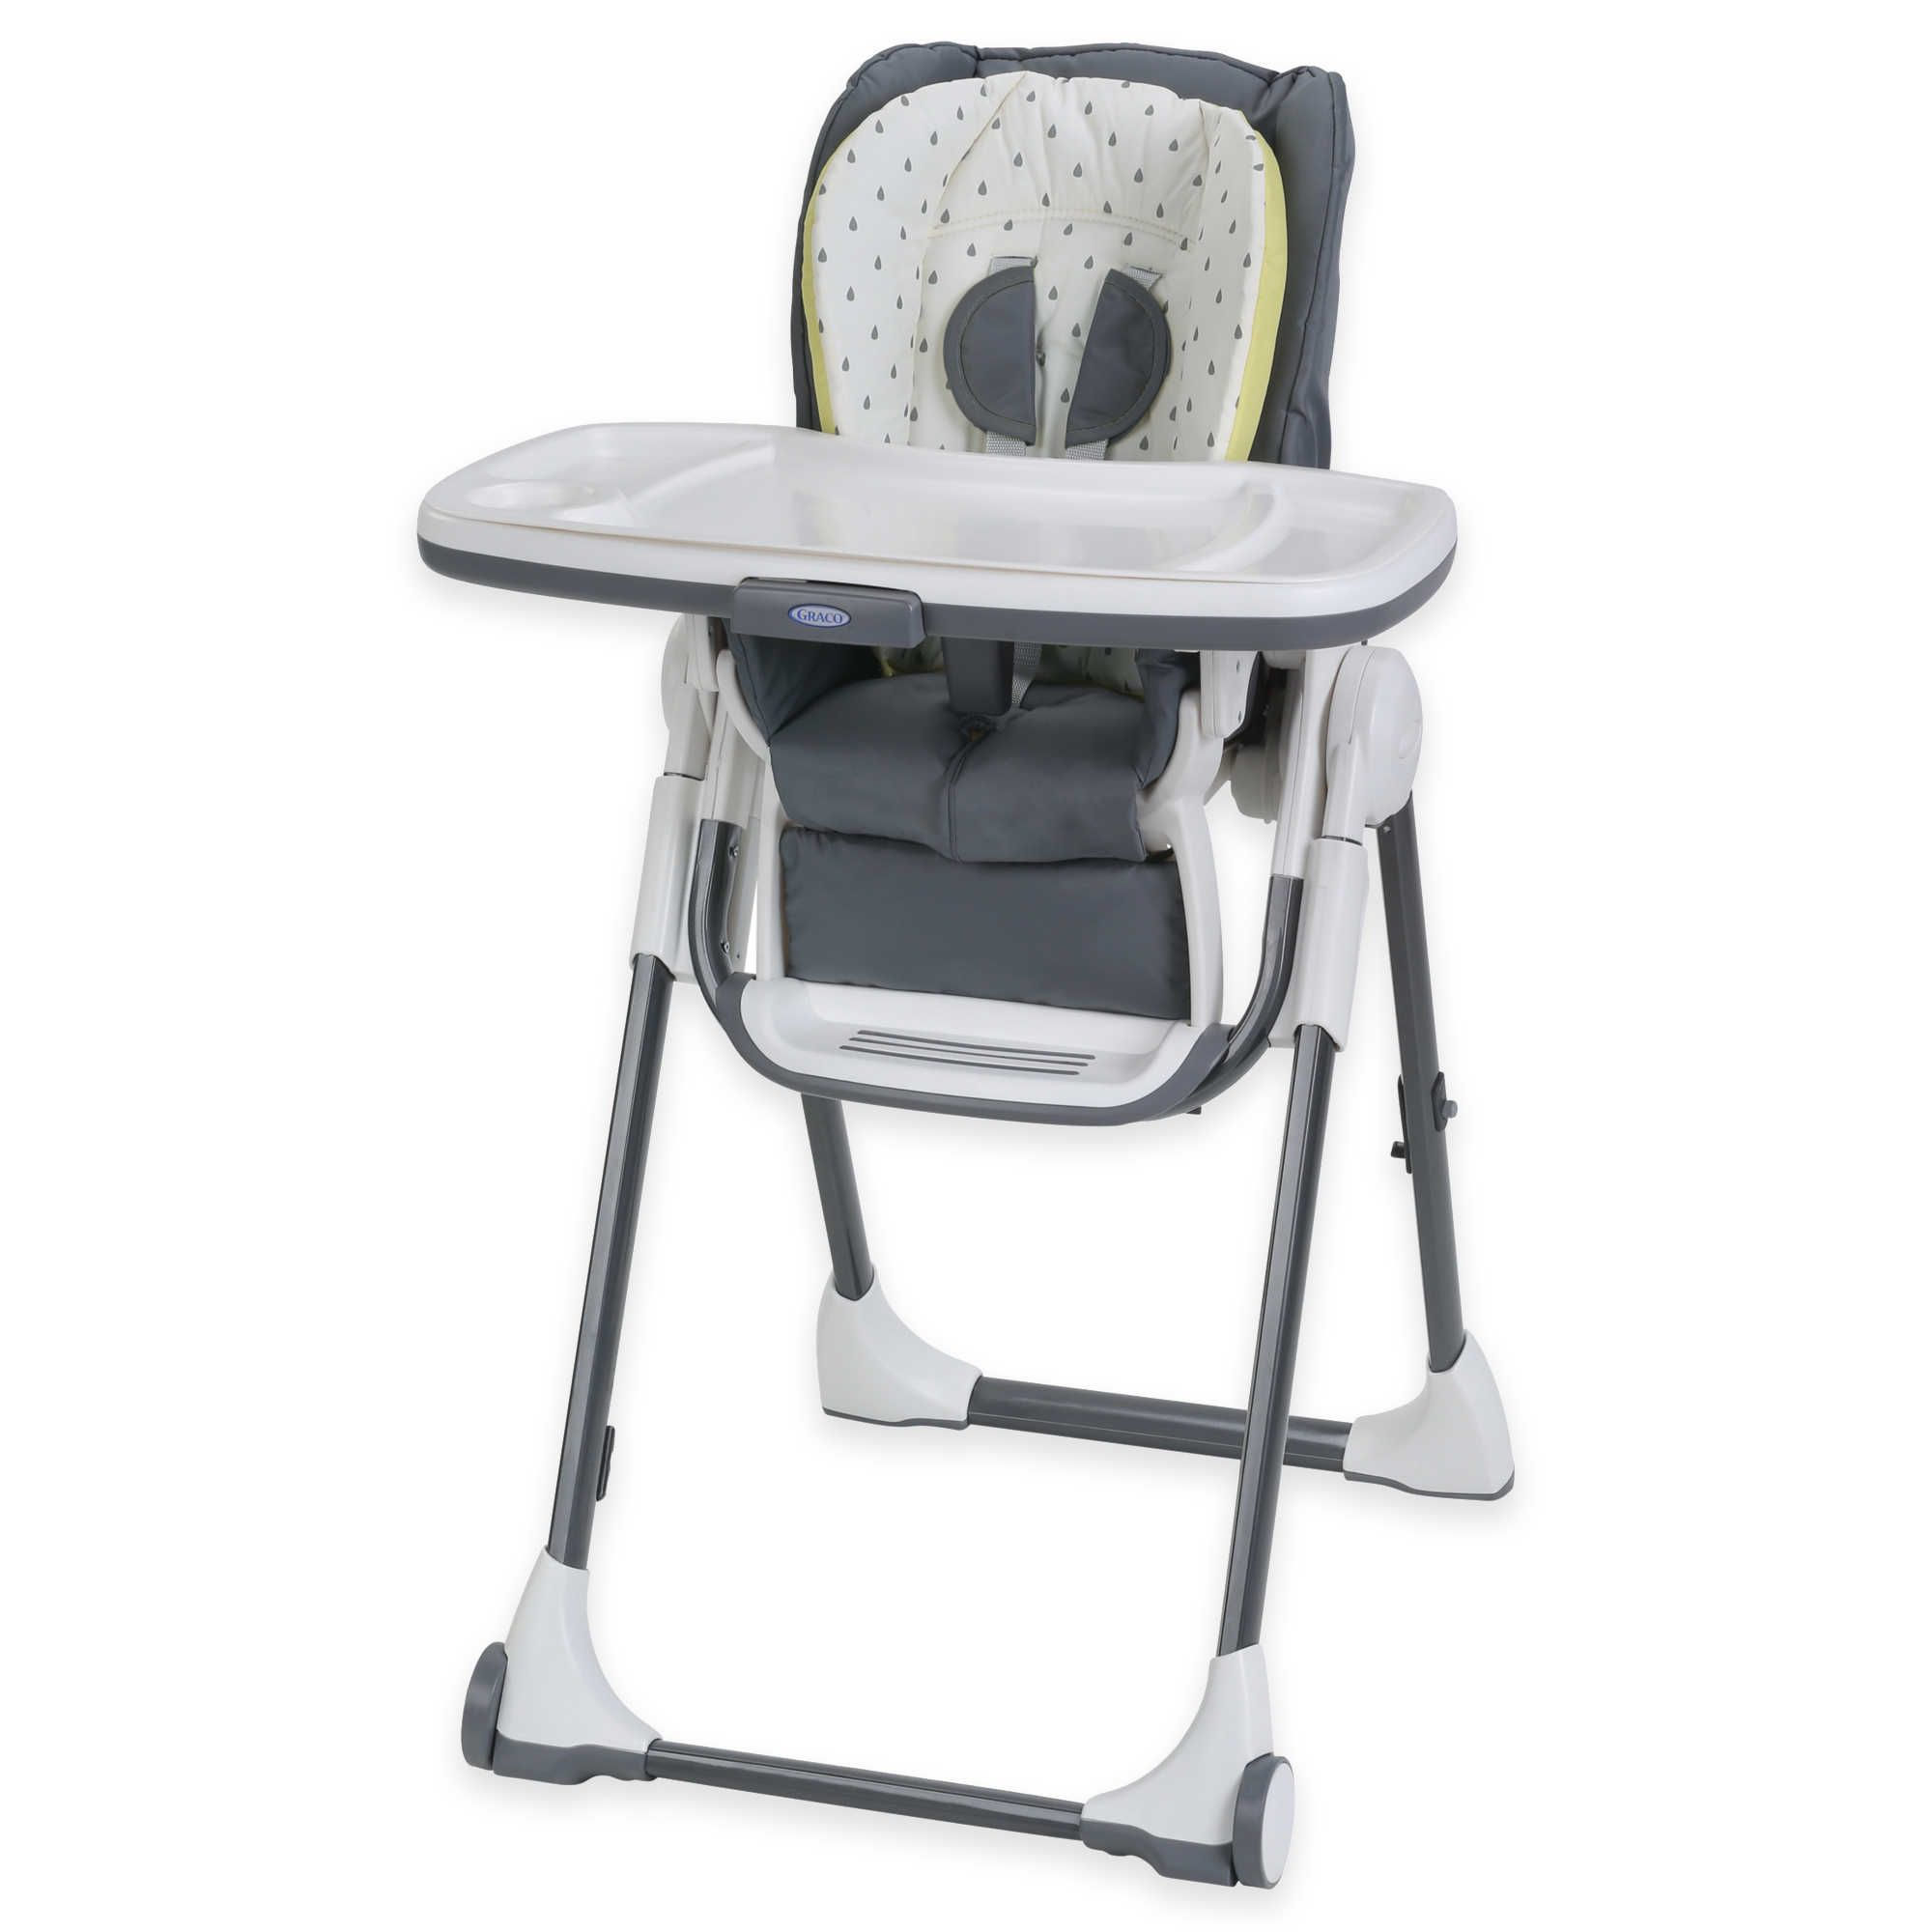 Graco® Swift Fold™ High Chair in Sprinkle Baby high